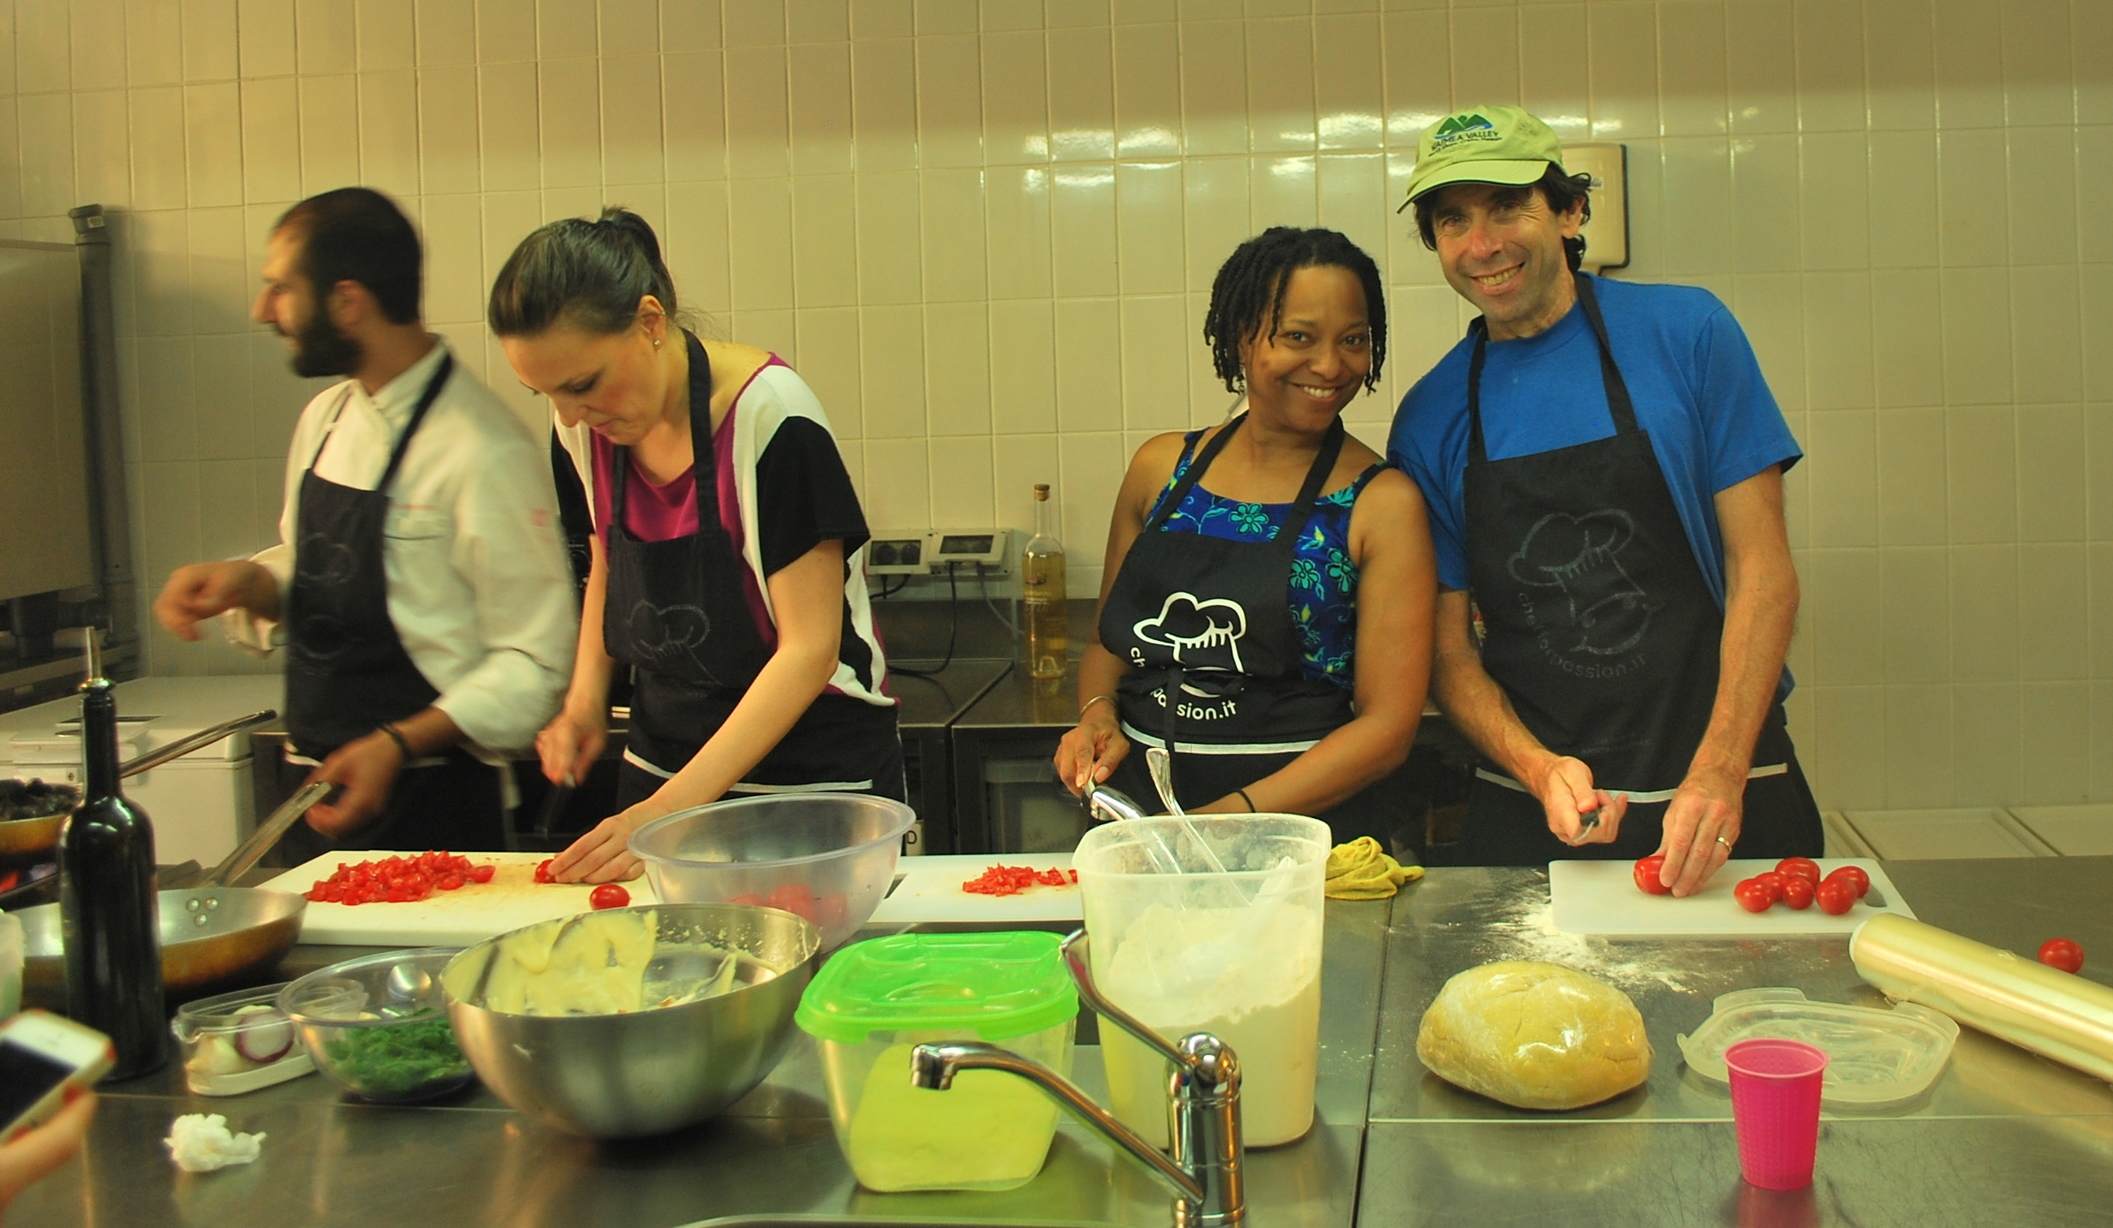 Cooking class in Sorrento, Italy